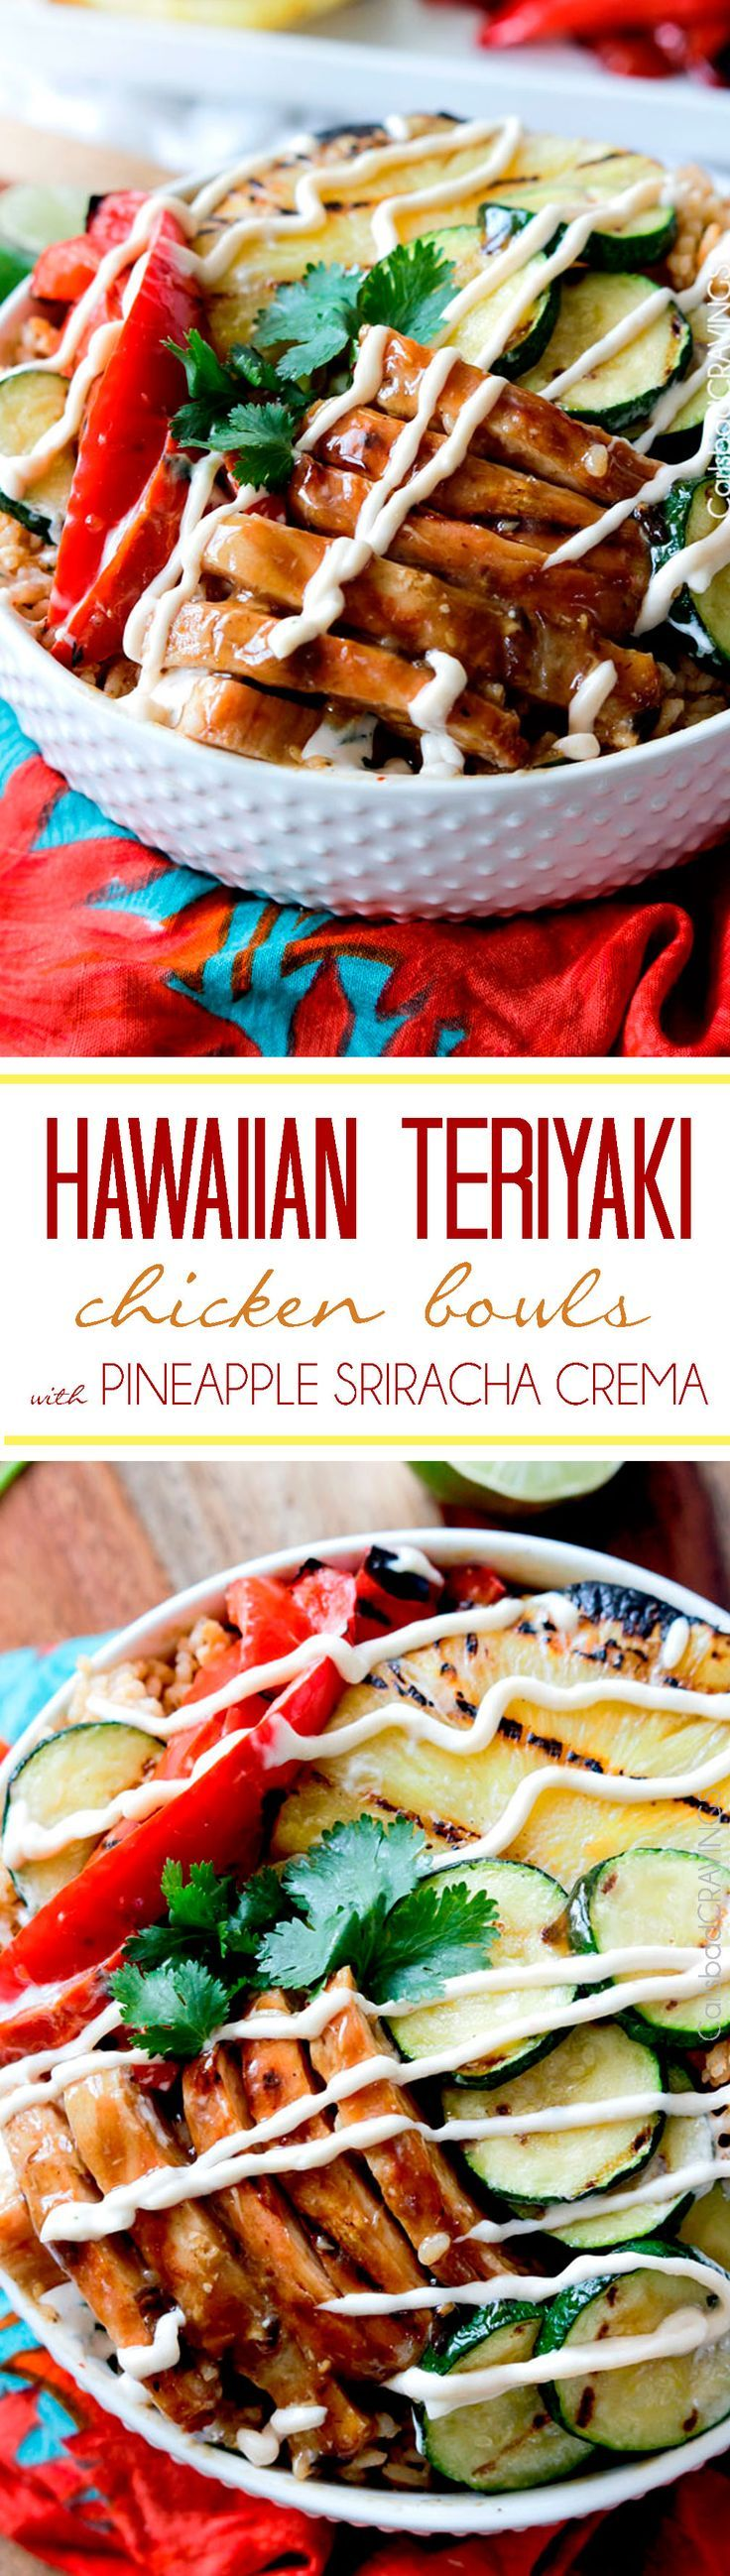 Easy crazy good Grilled Hawaiian Teriyaki Chicken Bowls with Sriracha Pineapple Crema are easy enough for everyday but AMAZING enough and stress free for company! everyone always raves about these